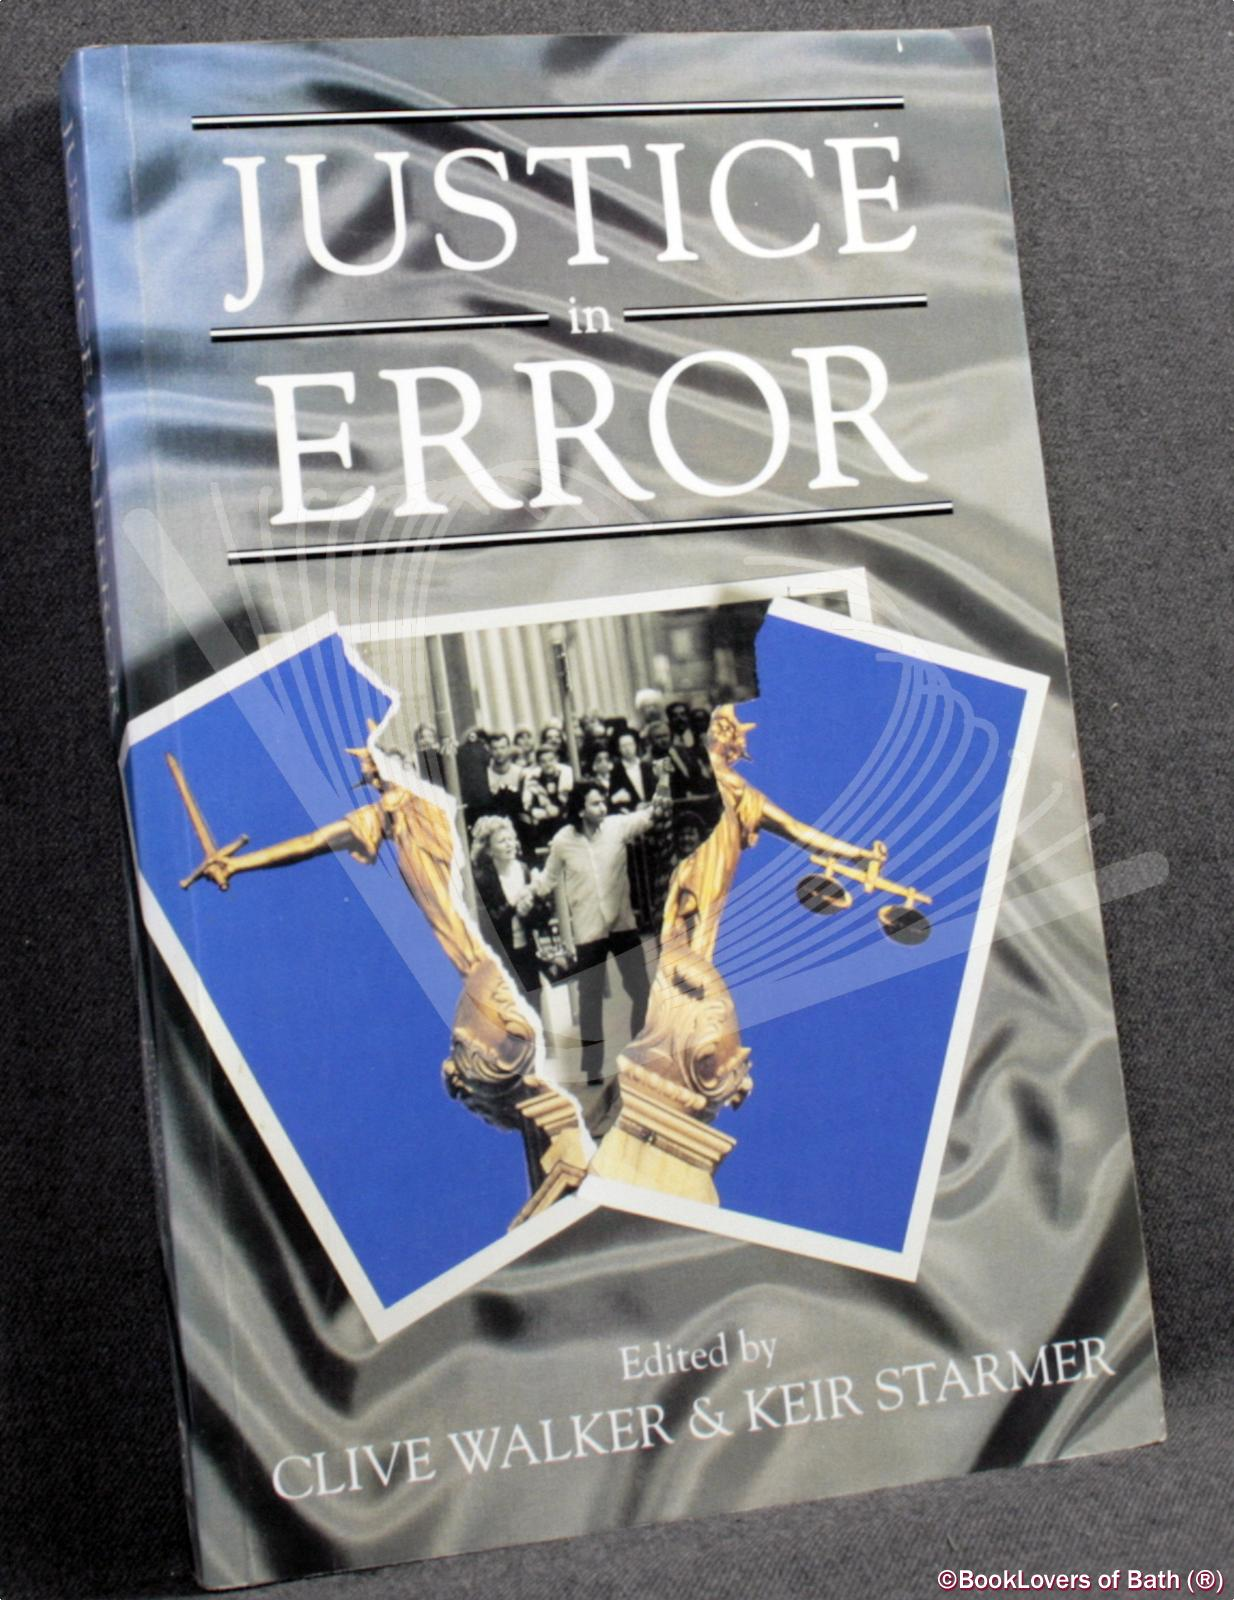 Justice in Error - Edited by Clive Walker & Keir Starmer